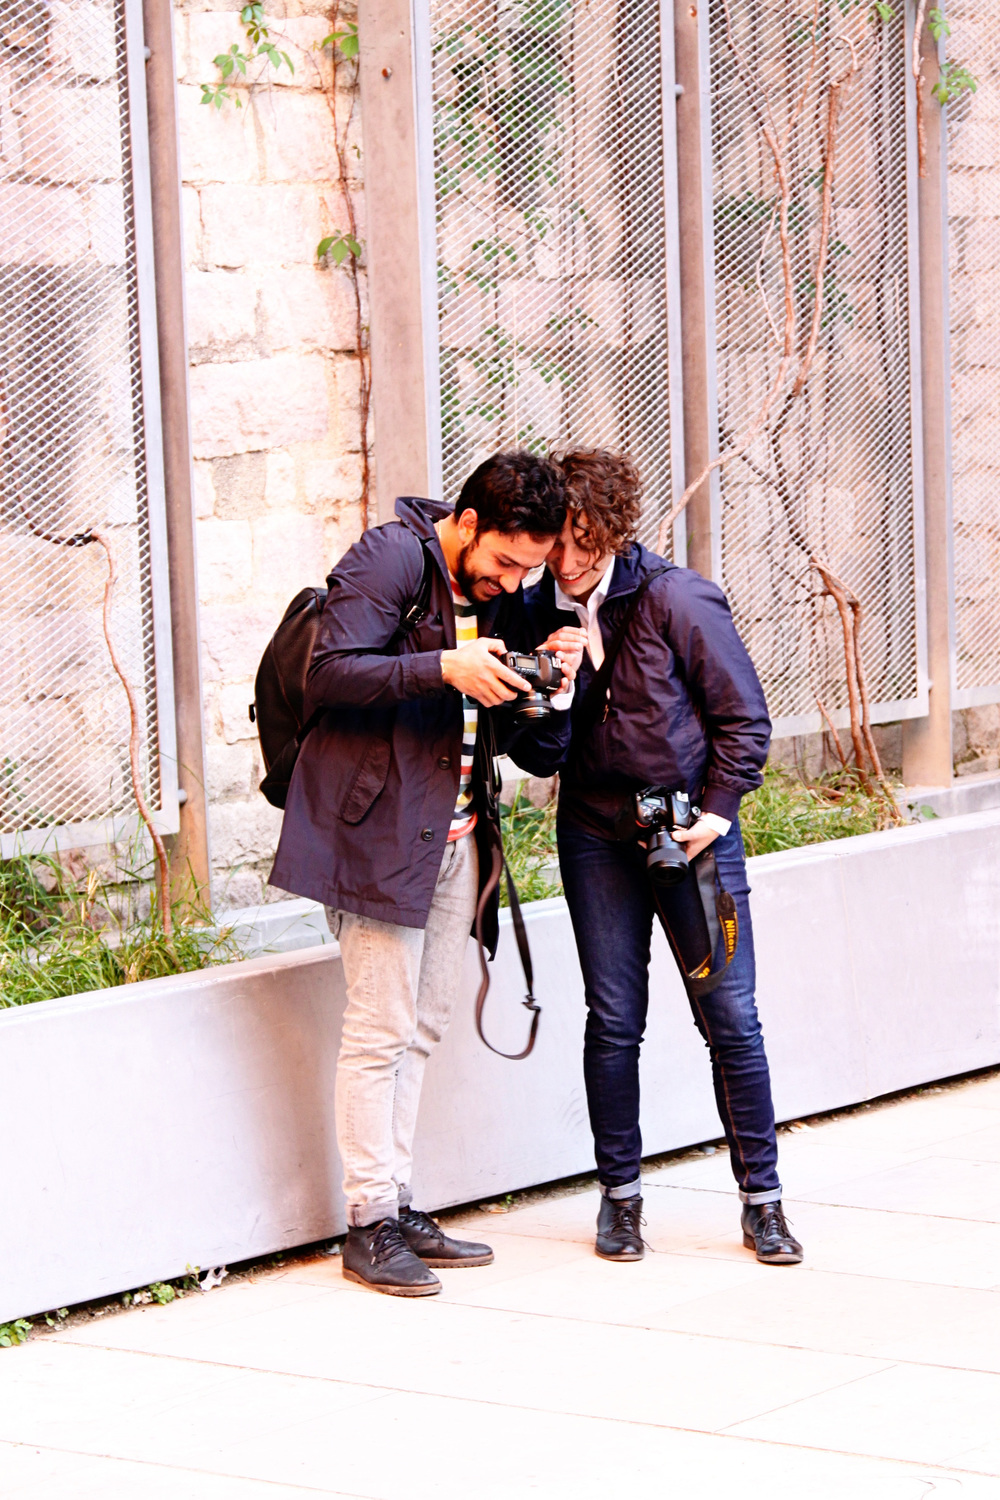 Roberta checking out her poses on Gonçalo's camera. Captured by Michelle